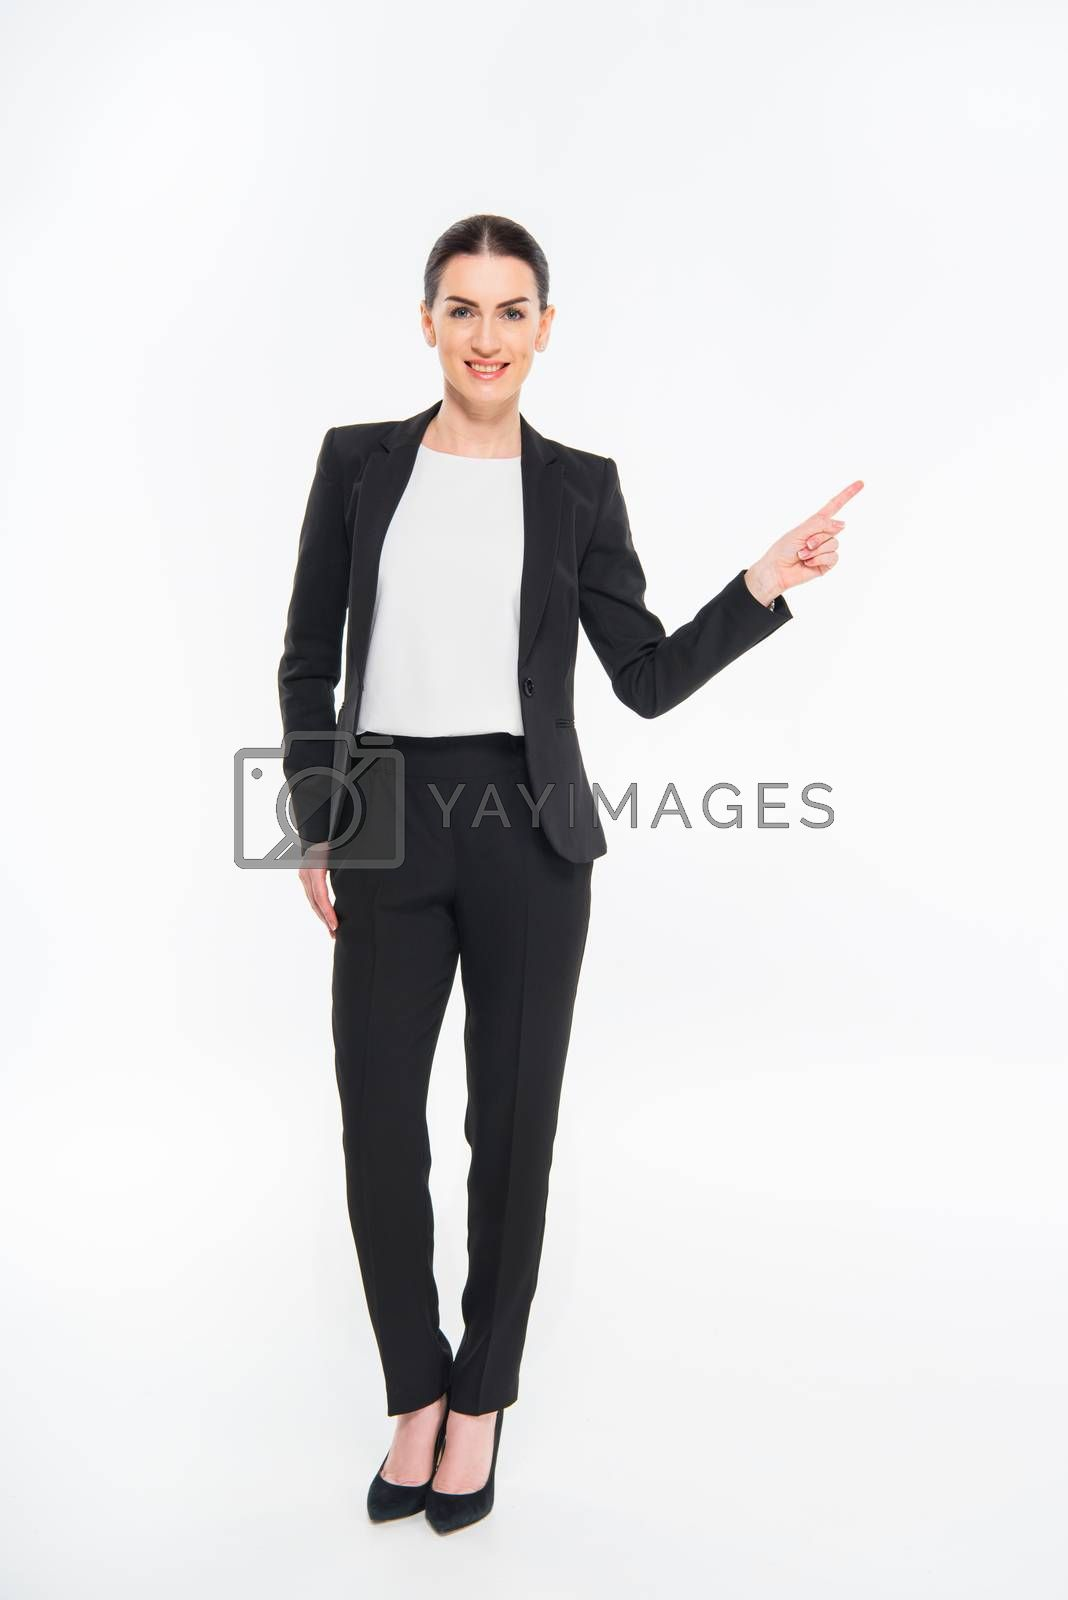 Royalty free image of Businesswoman pointing with finger by LightFieldStudios